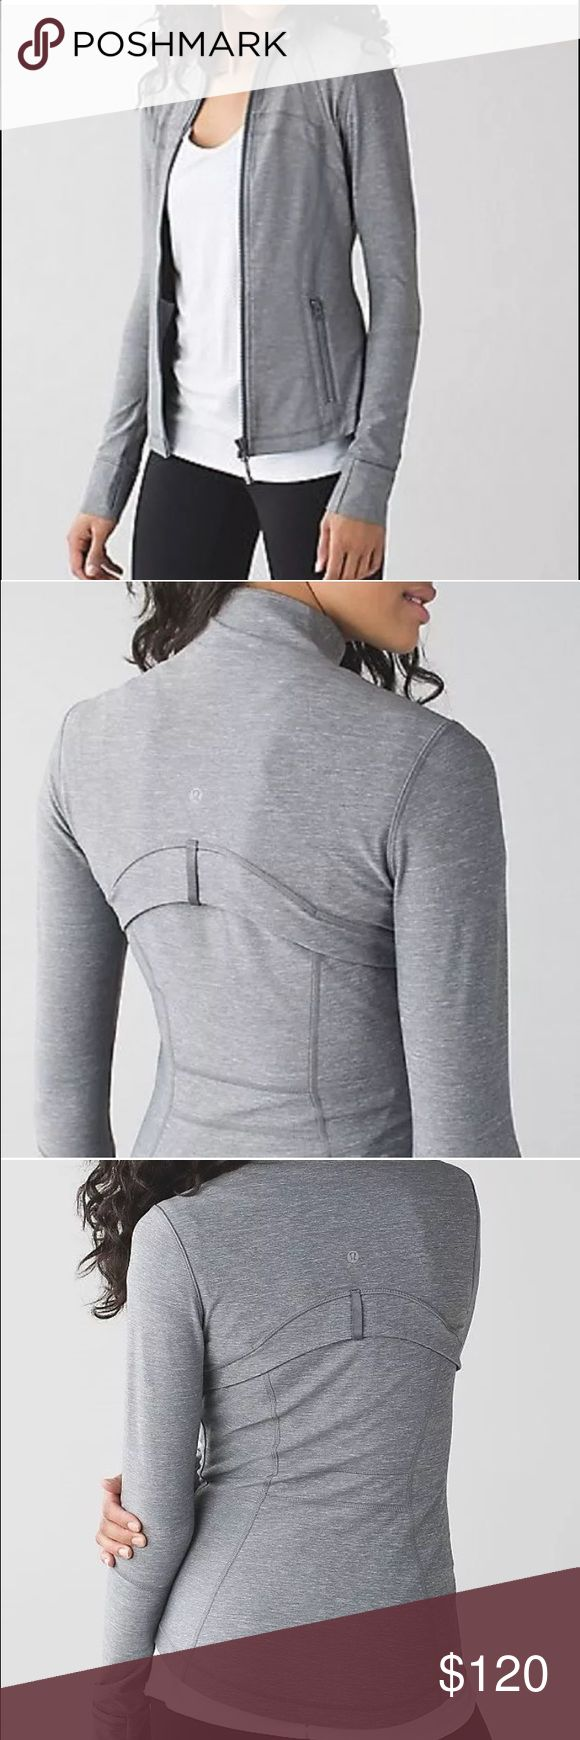 lululemon define jacket heathered grey New no tag. Cheaper on Ⓜ️. NO TRADES lululemon athletica Tops Sweatshirts & Hoodies